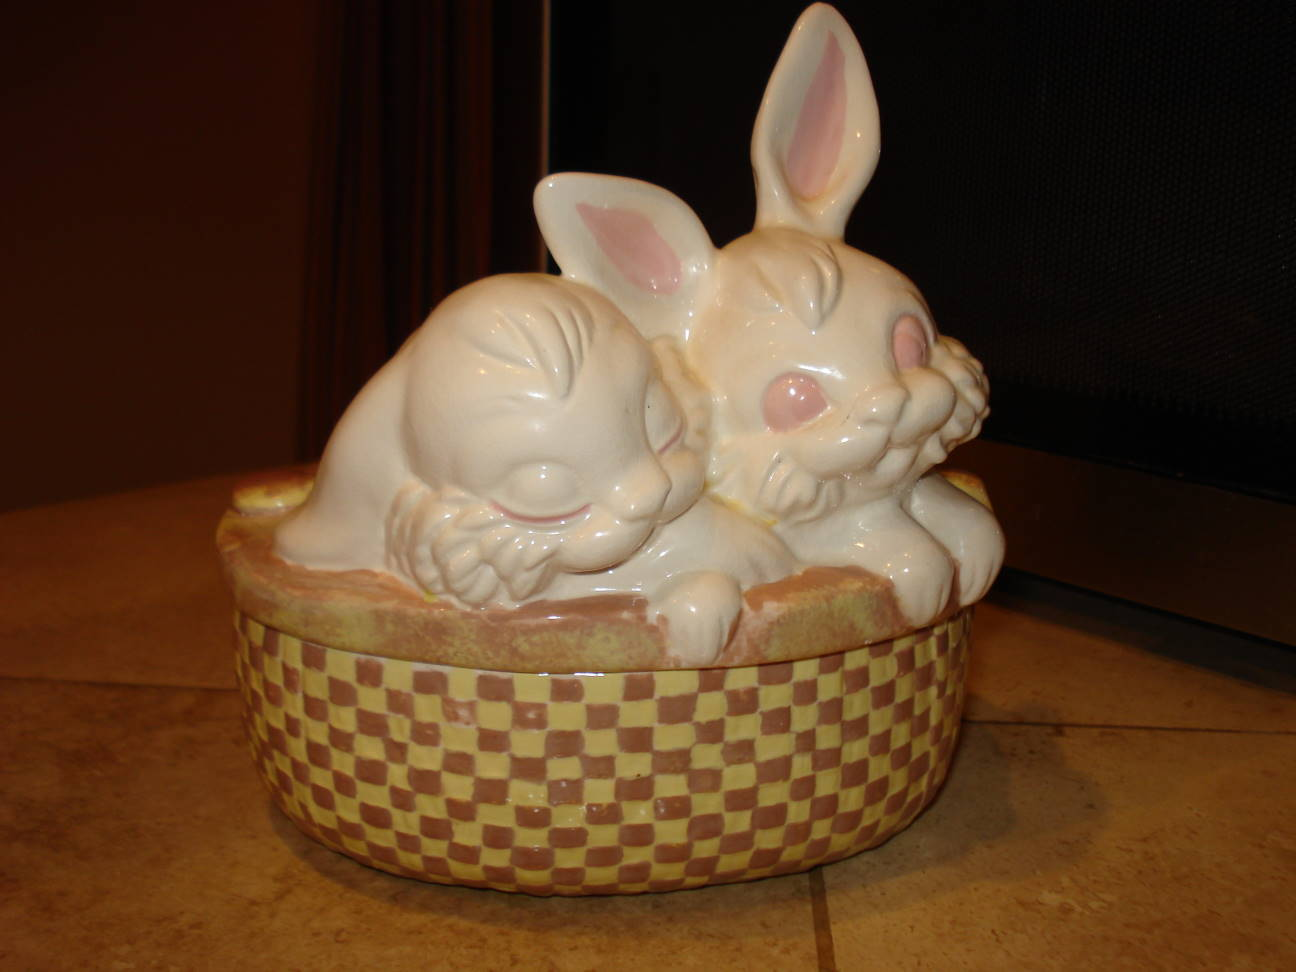 Bunny dish from my childhood. Photo by Mary Warner, March 28, 2016.